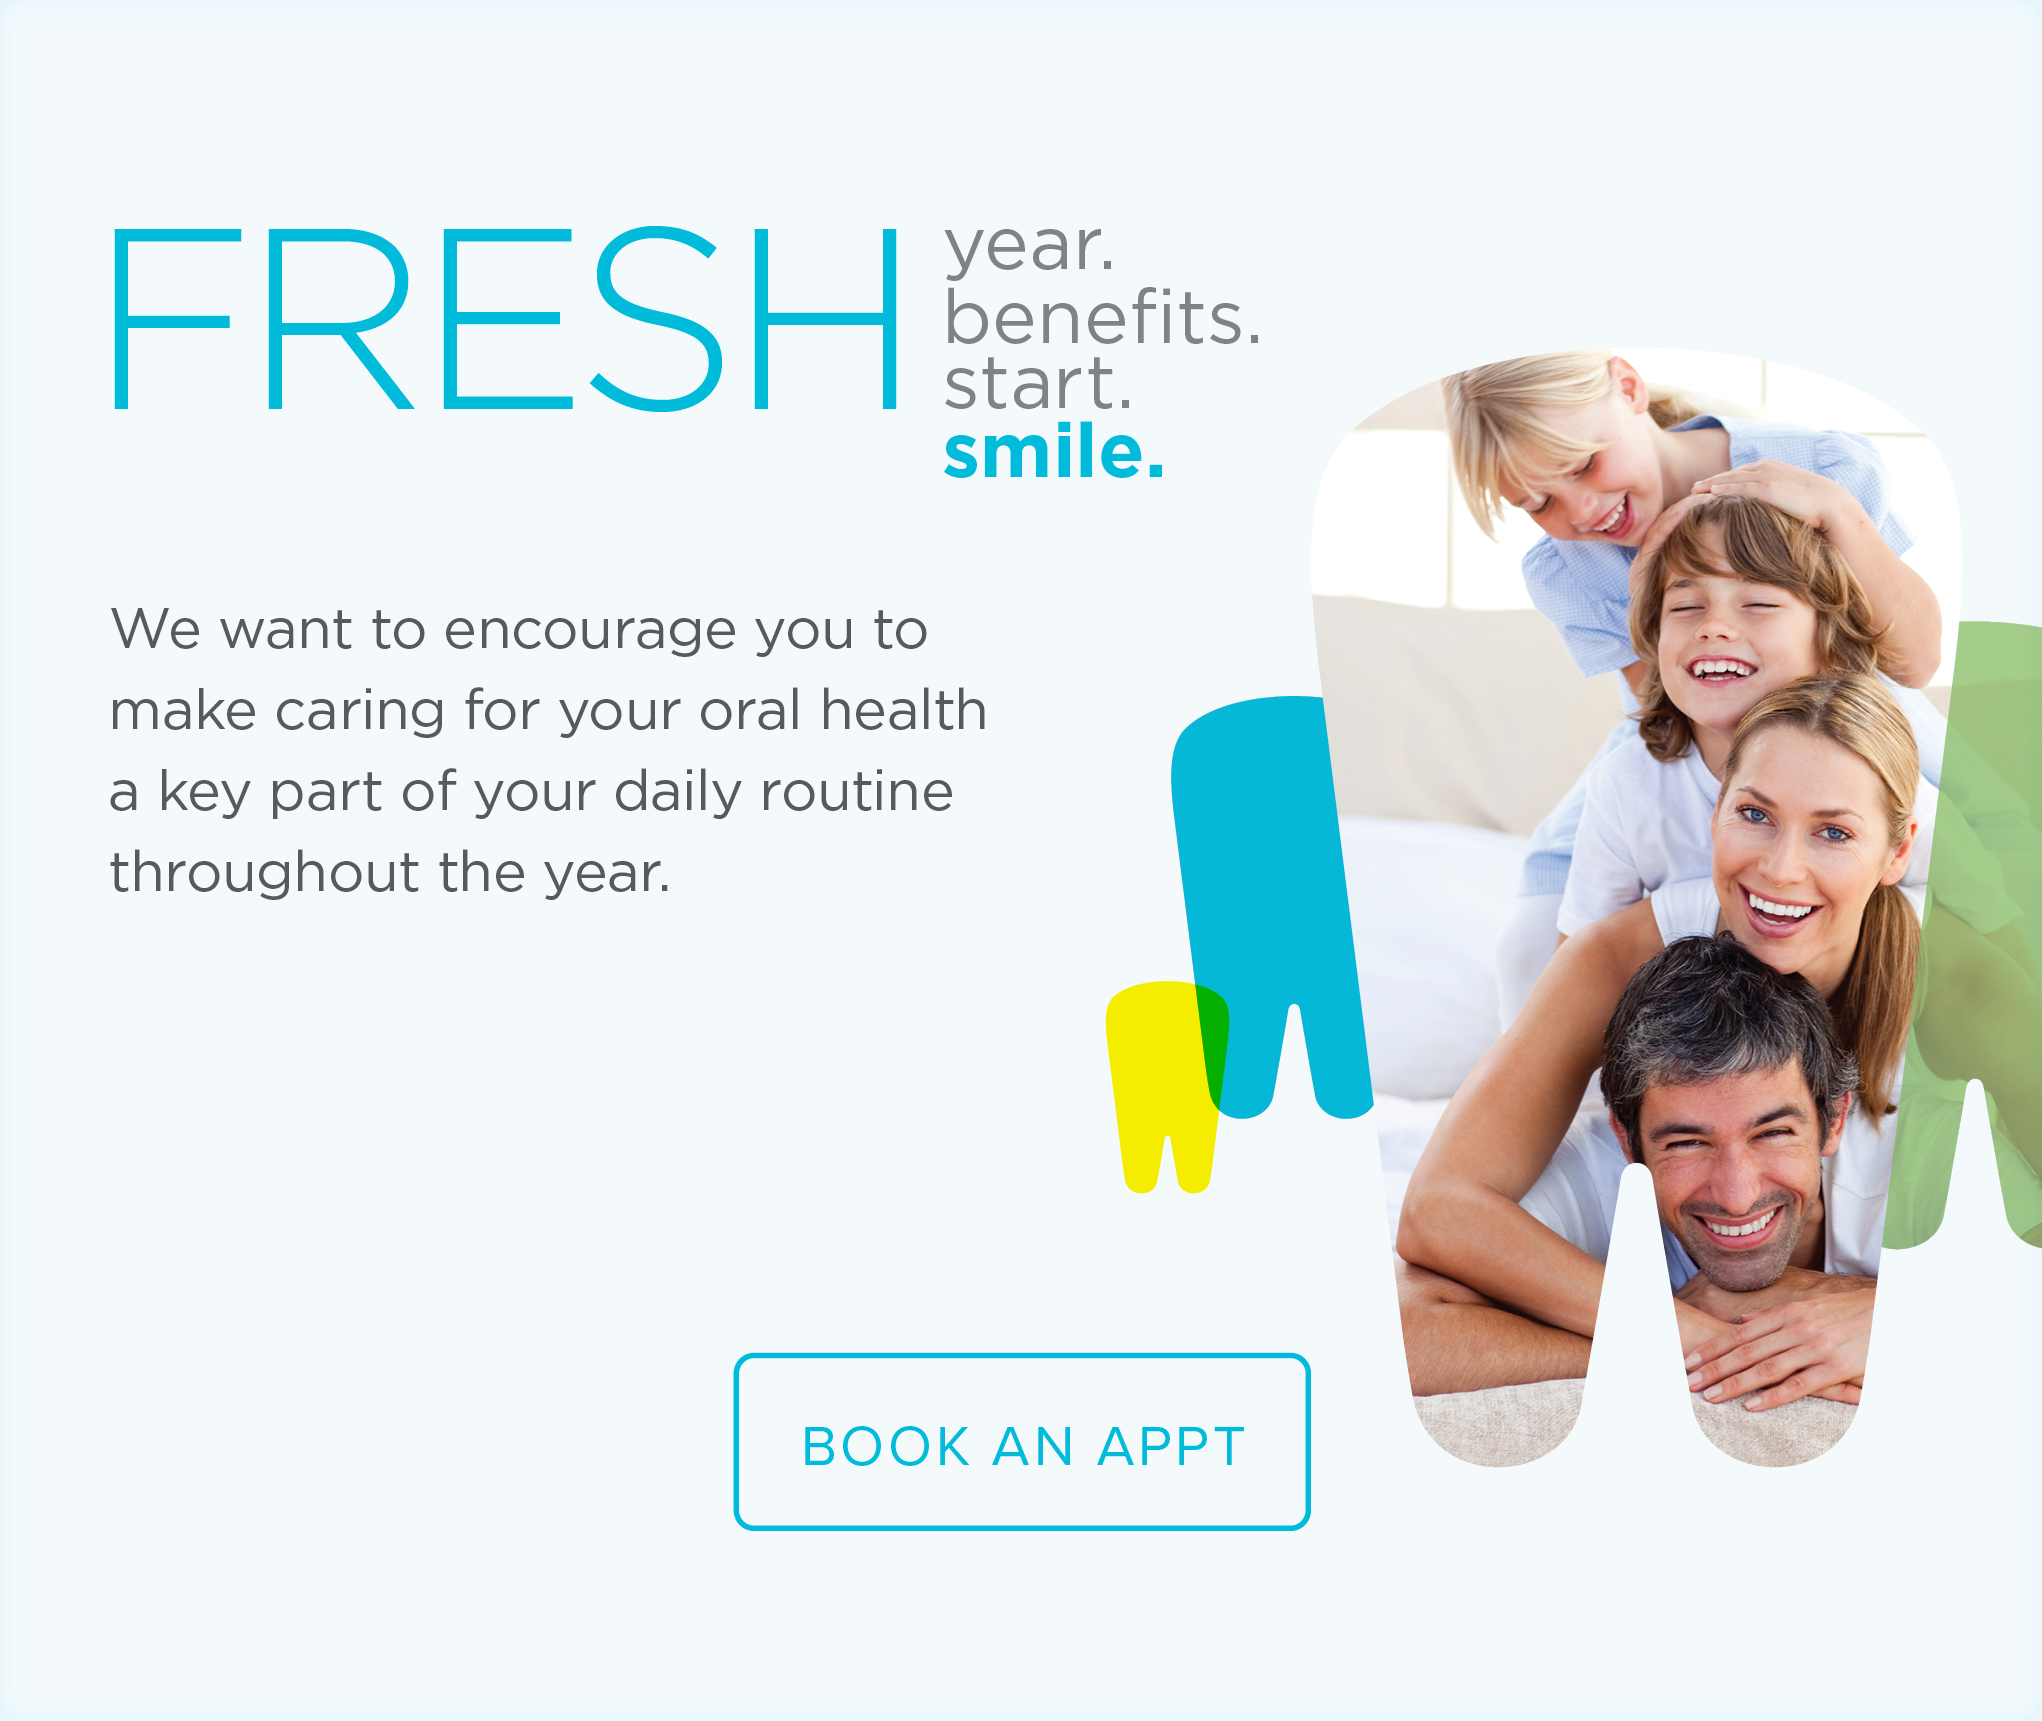 Boulder Modern Dentistry - Make the Most of Your Benefits